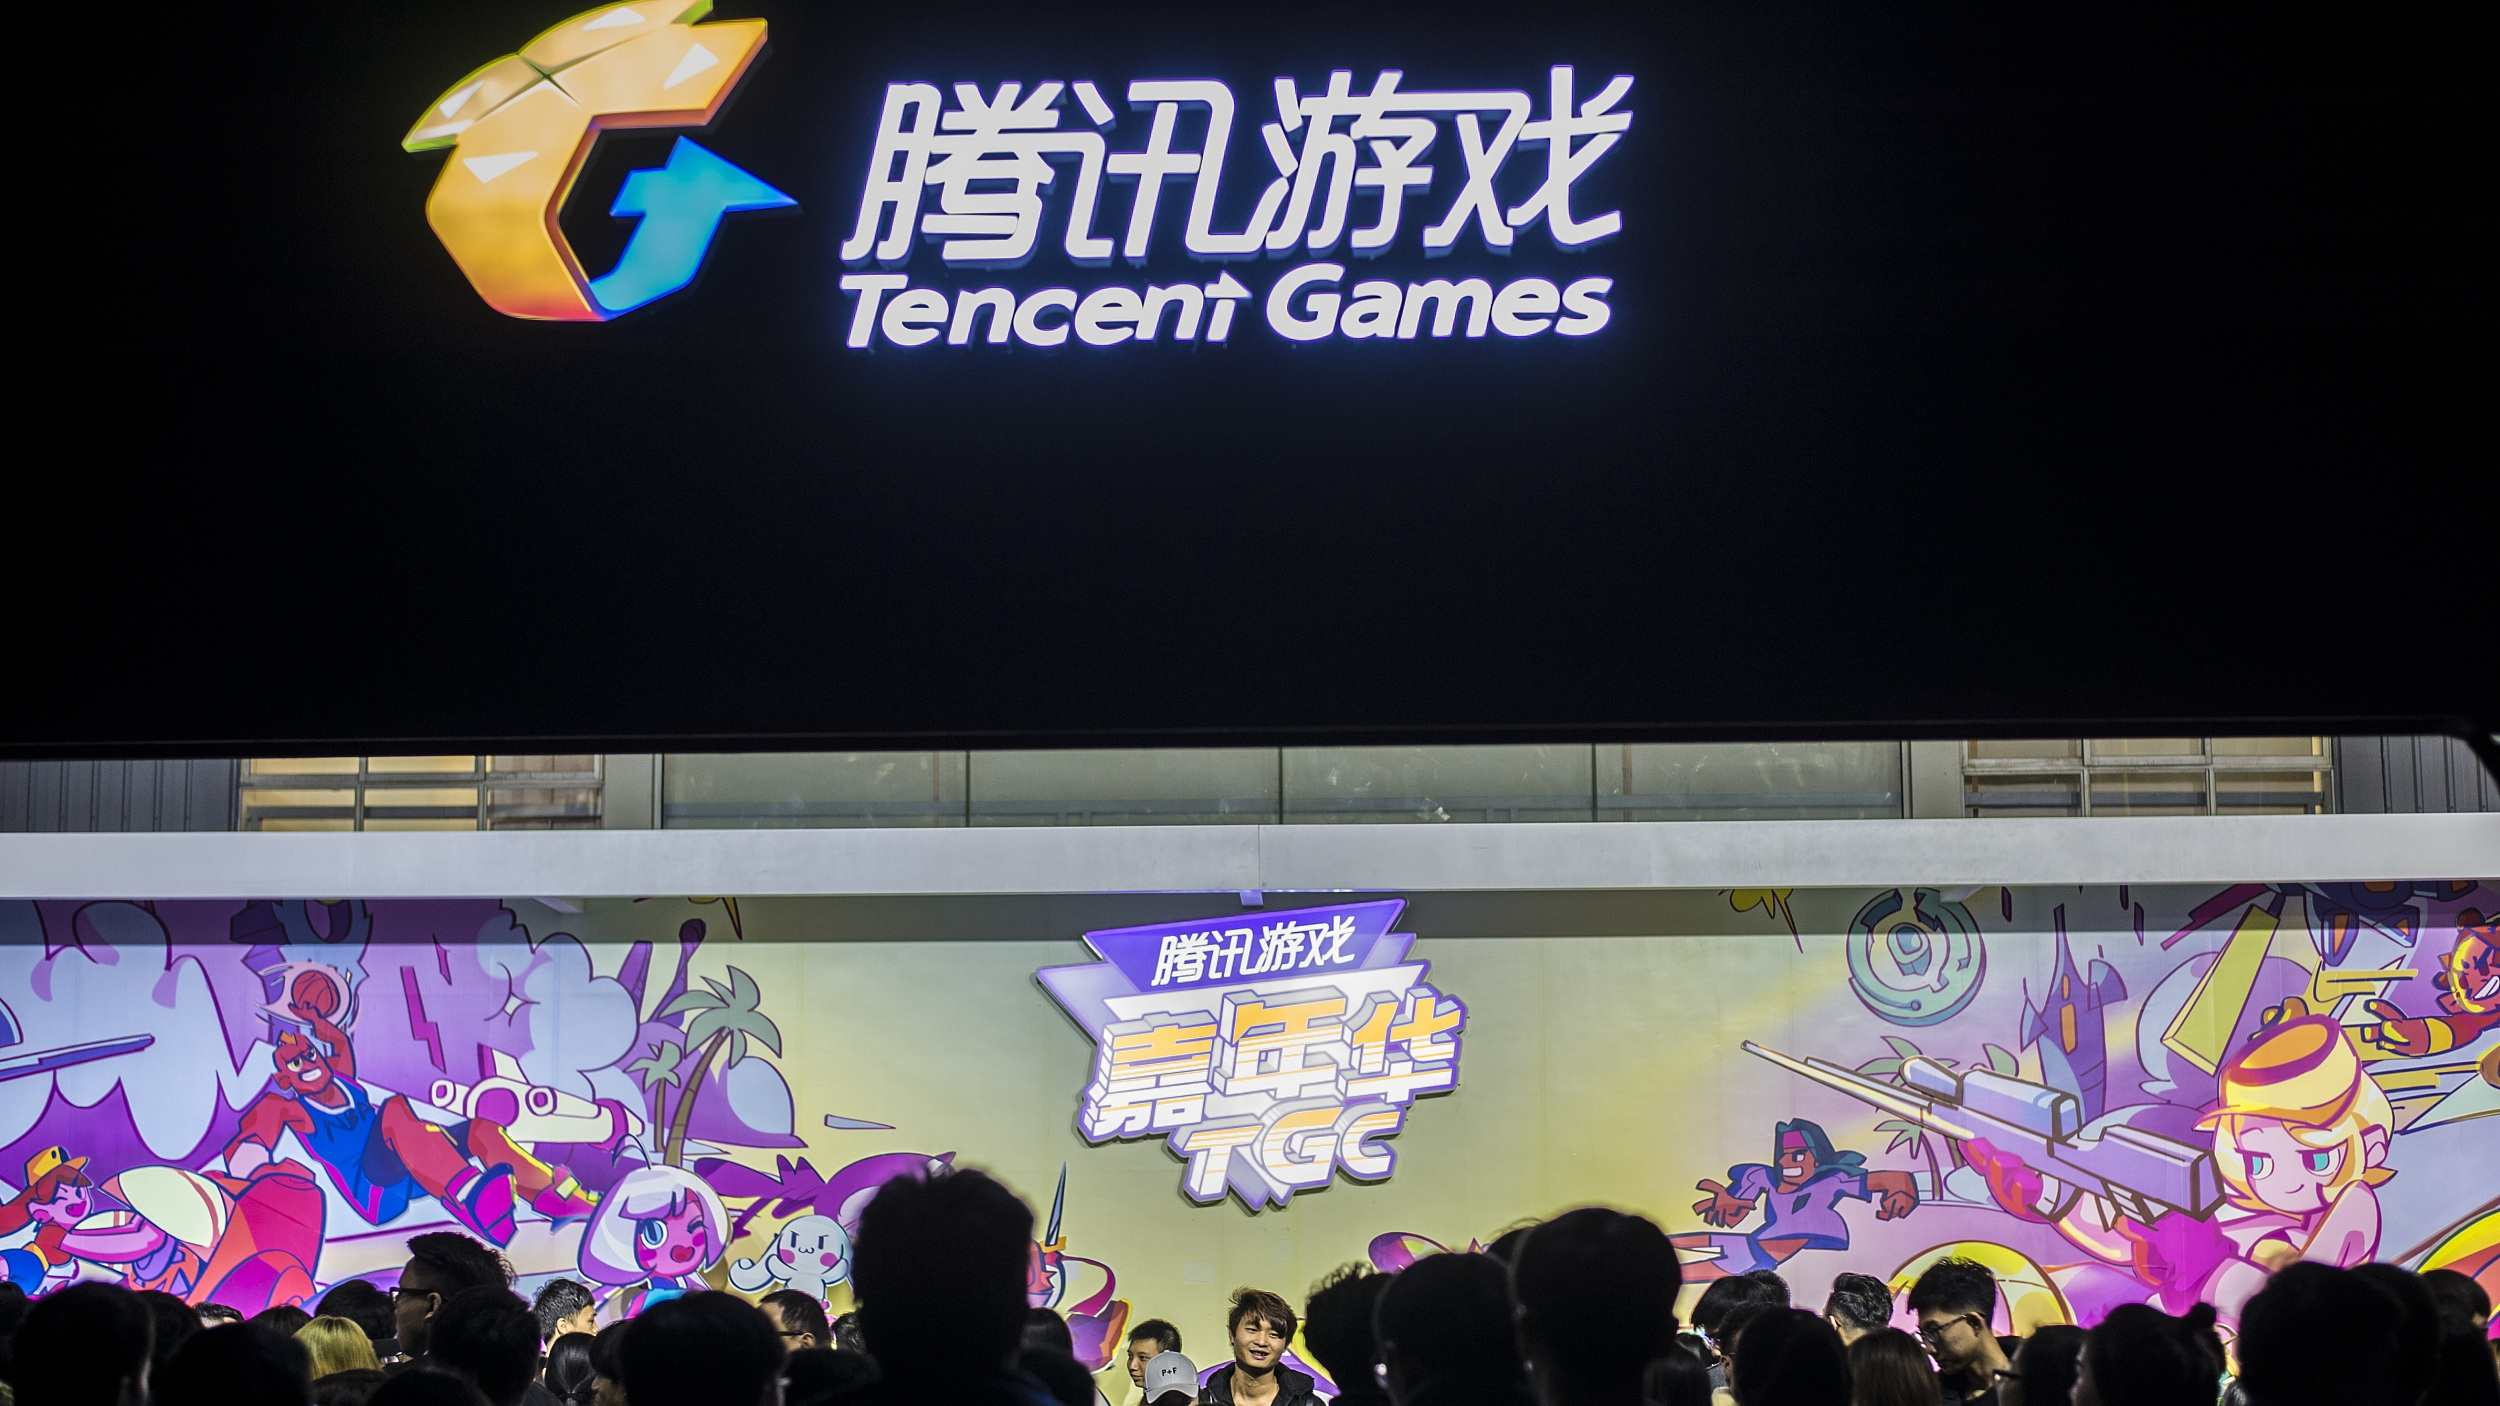 Gaming restrictions in China to curb myopia impact Tencent